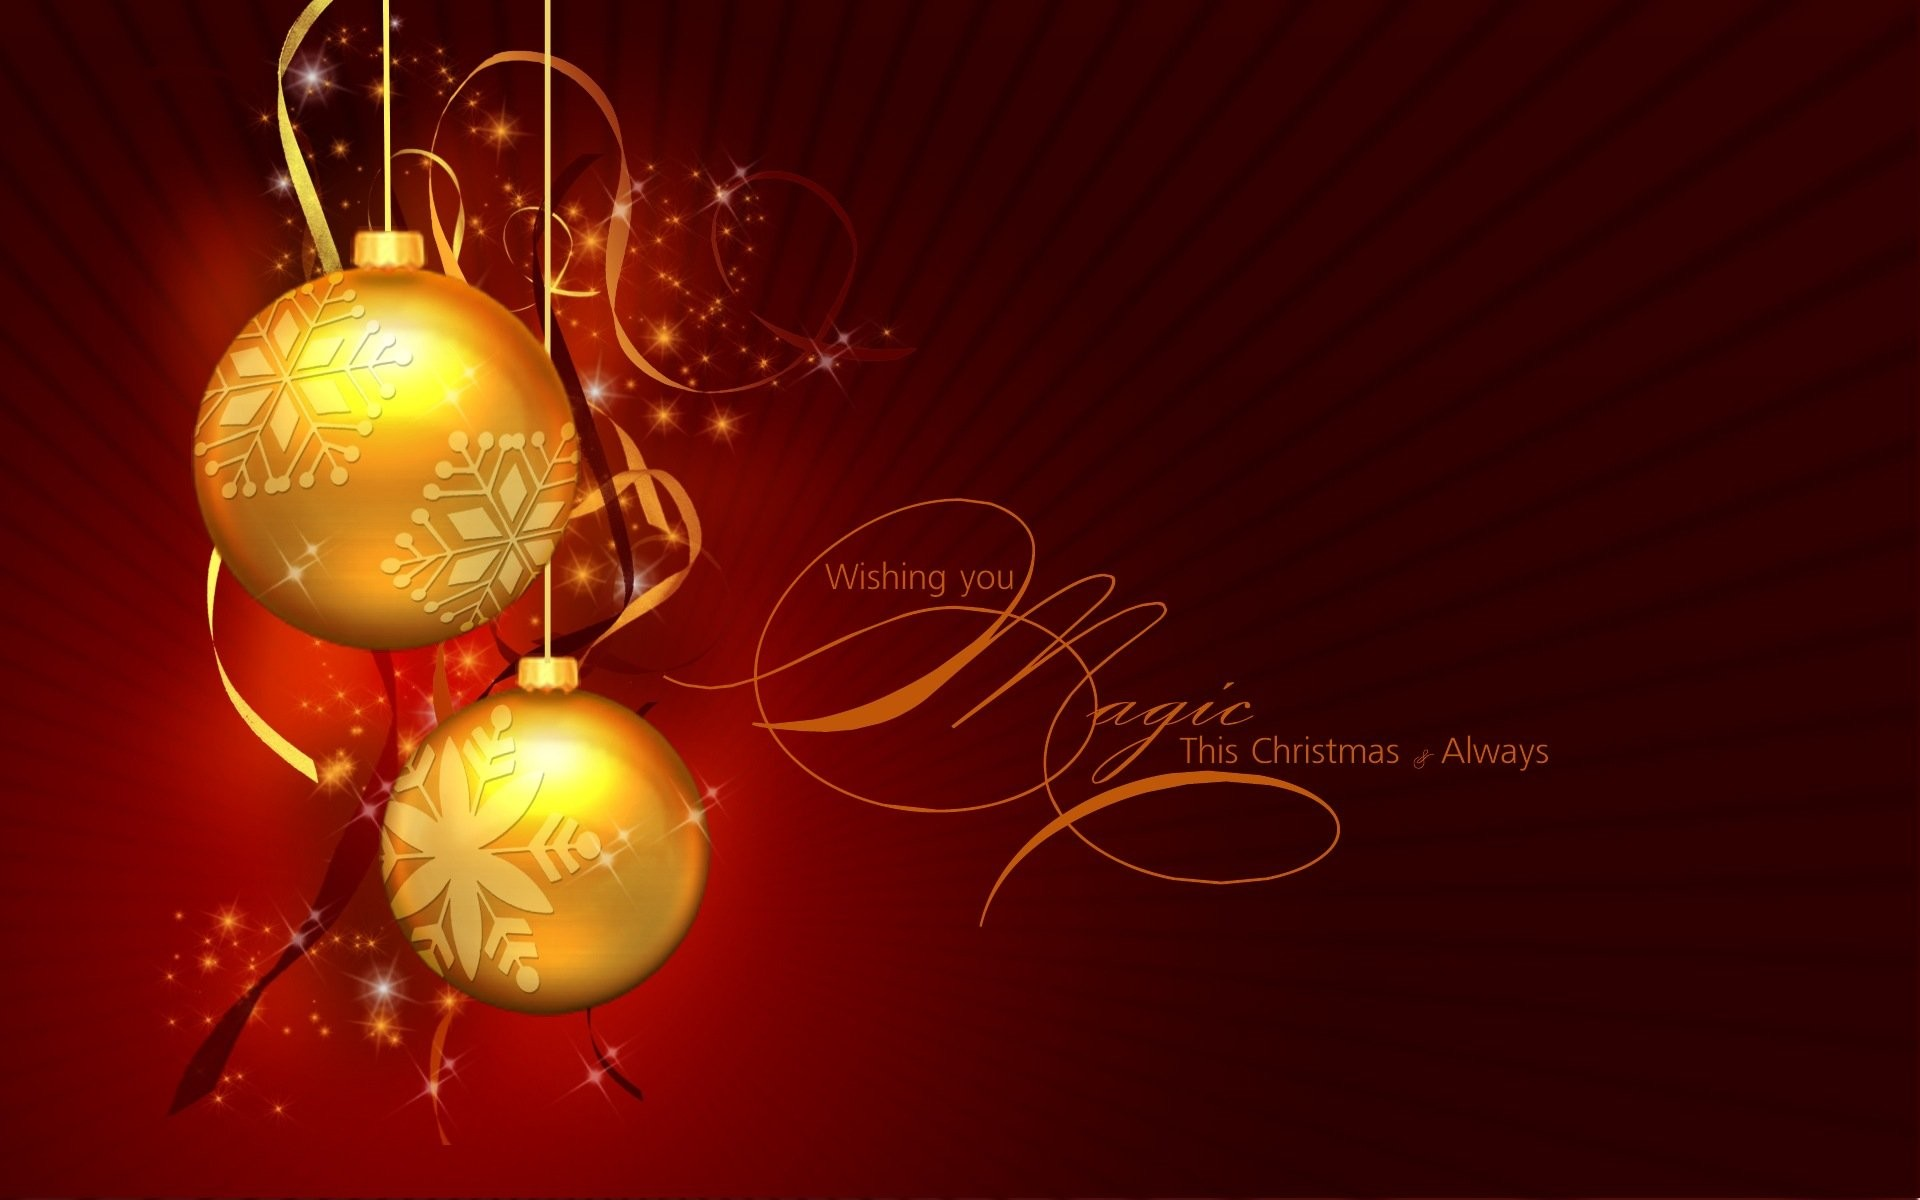 Christmas Holiday 564421. SHARE. TAGS: Second Holiday Merry Desktop  Animated Backgrounds Background Bright Christmas